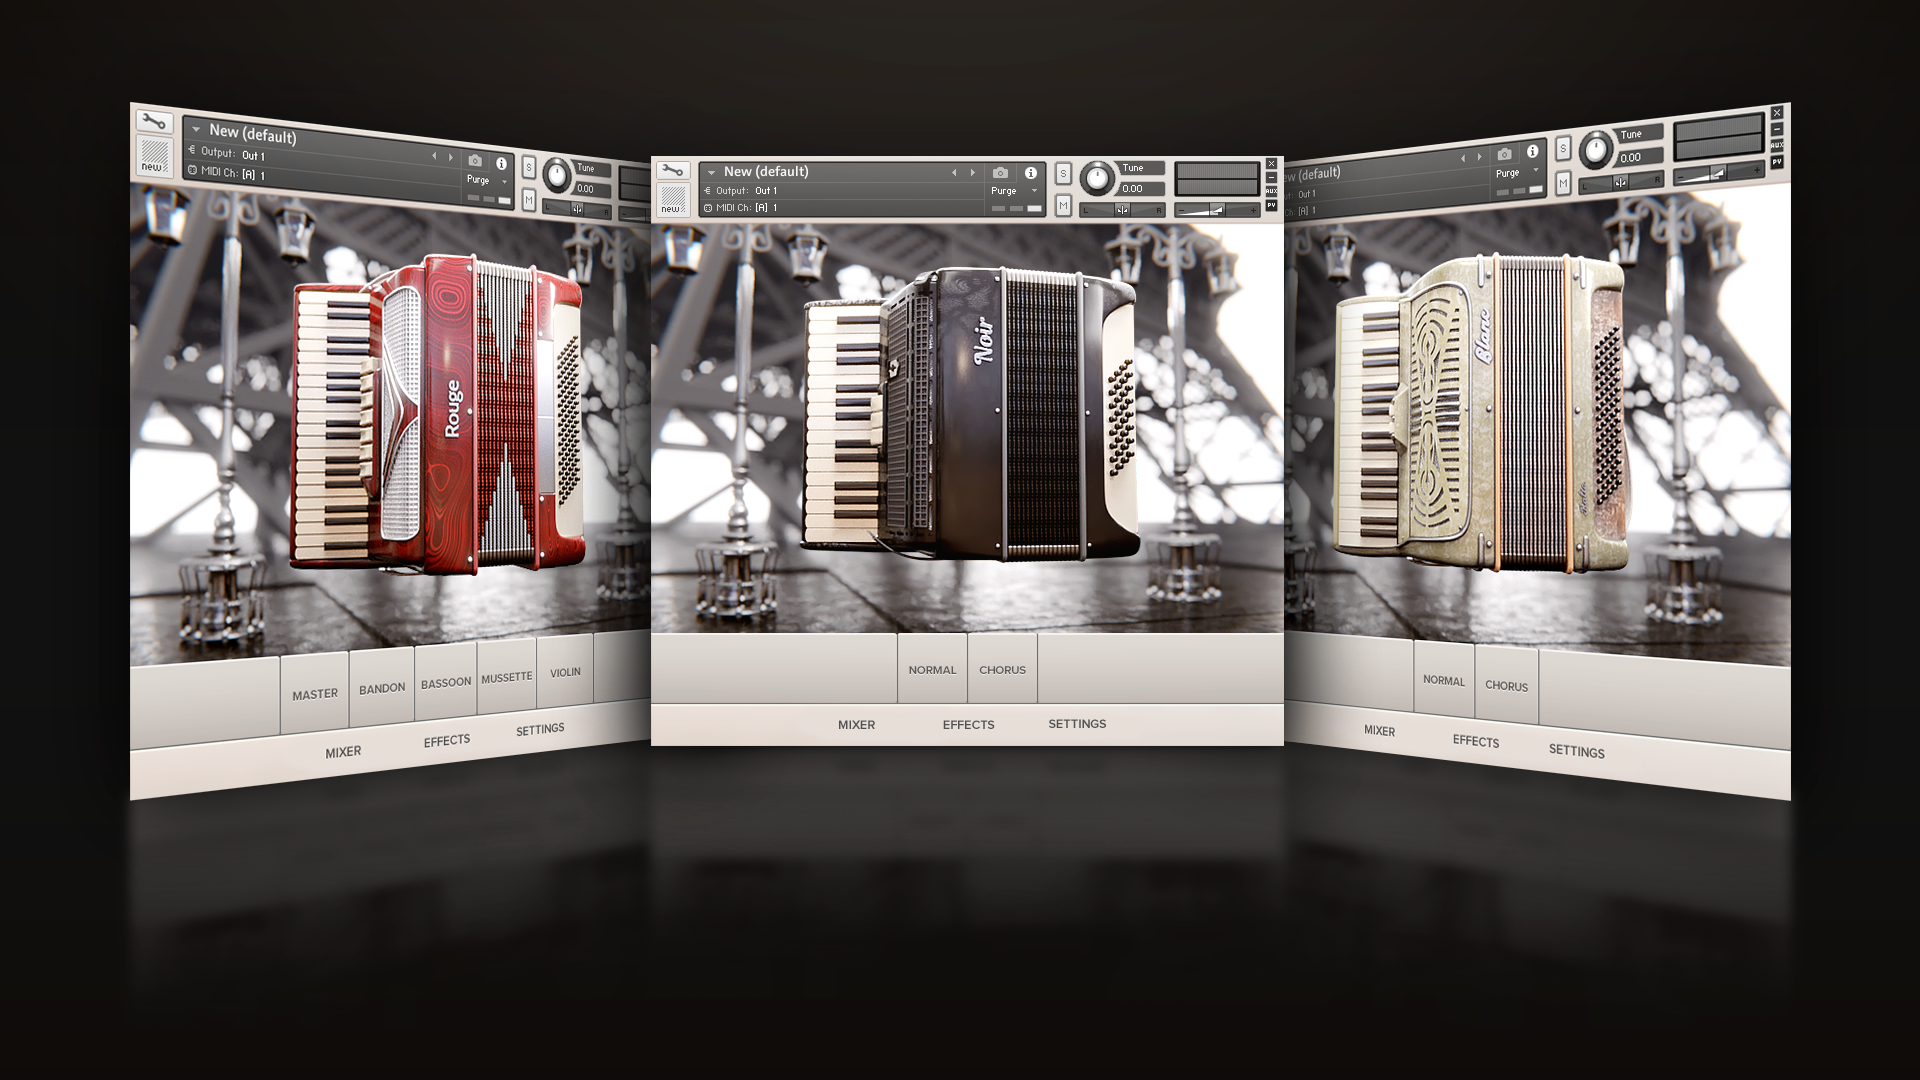 Wavesfactory LeParisien Accordion Kontakt Library GUI by Voger Design